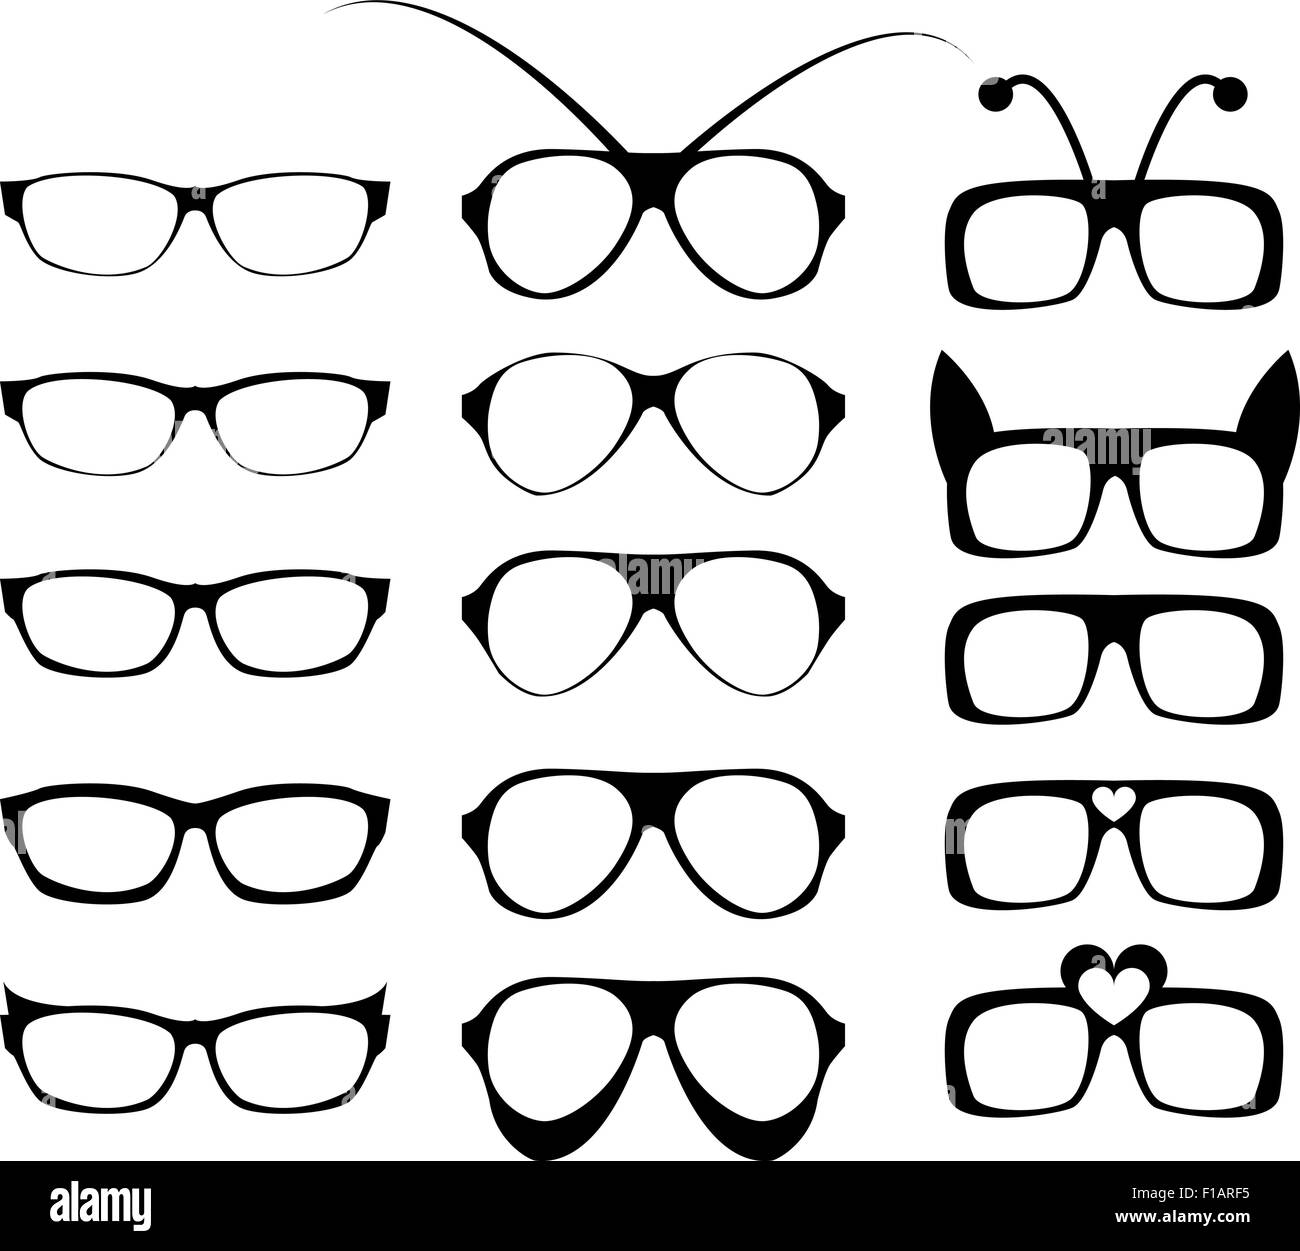 Set of glasses frame in fancy style in modern and fancy concept. vector illustration. - Stock Image